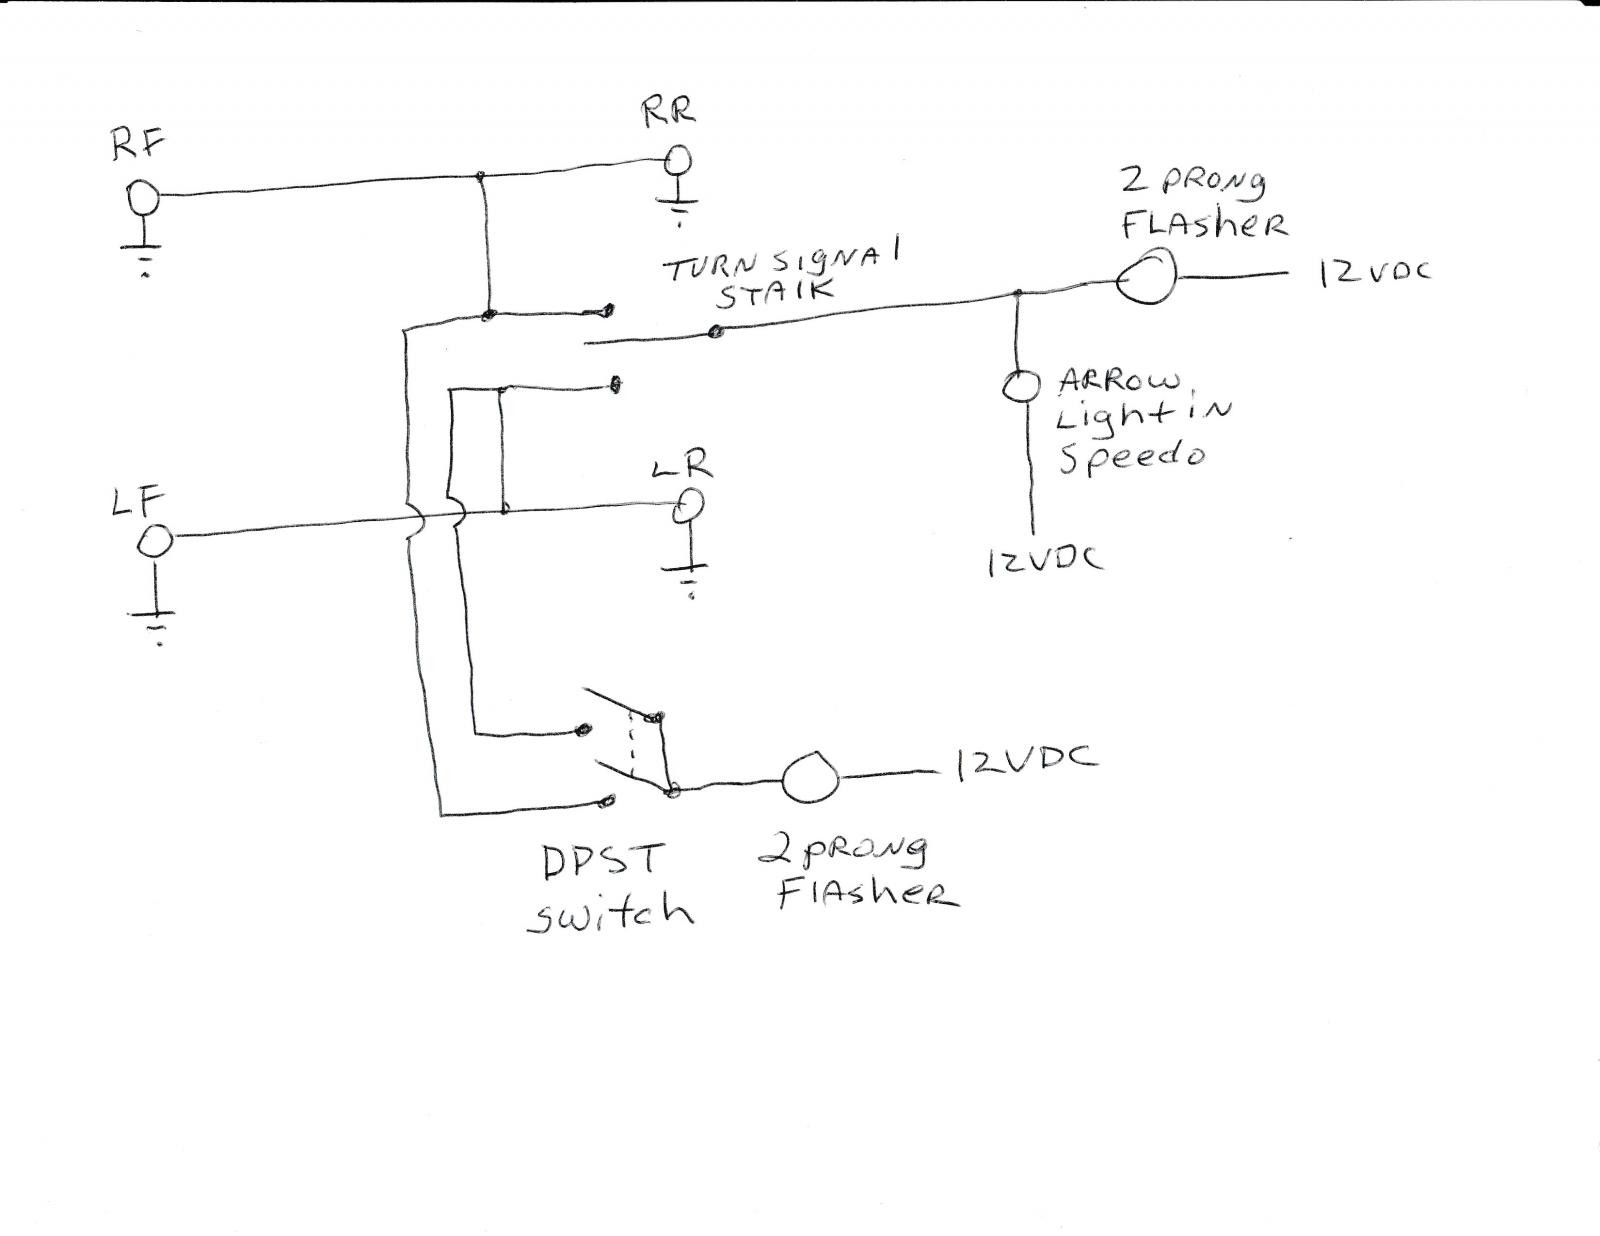 Three Pron Flasher Diagram thesamba Ghia View topic Emergency Hazard Of Three Pron Flasher Diagram